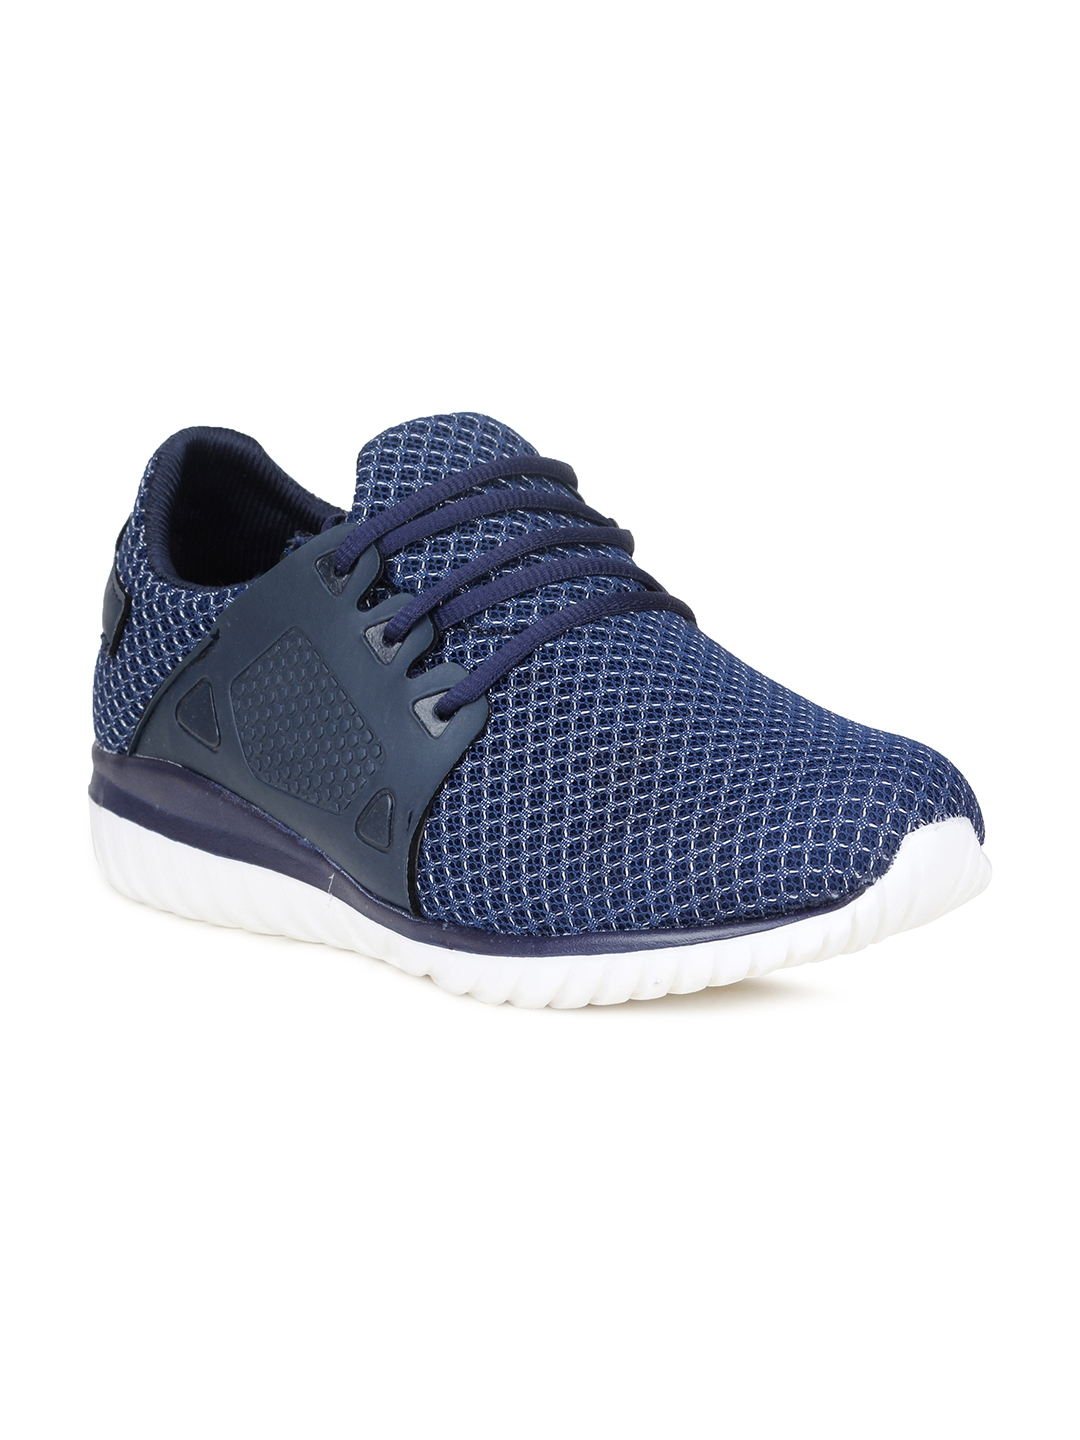 dde7463f9d5dbc Buy Columbus Men Navy Blue Running Shoes - Sports Shoes for Men ...